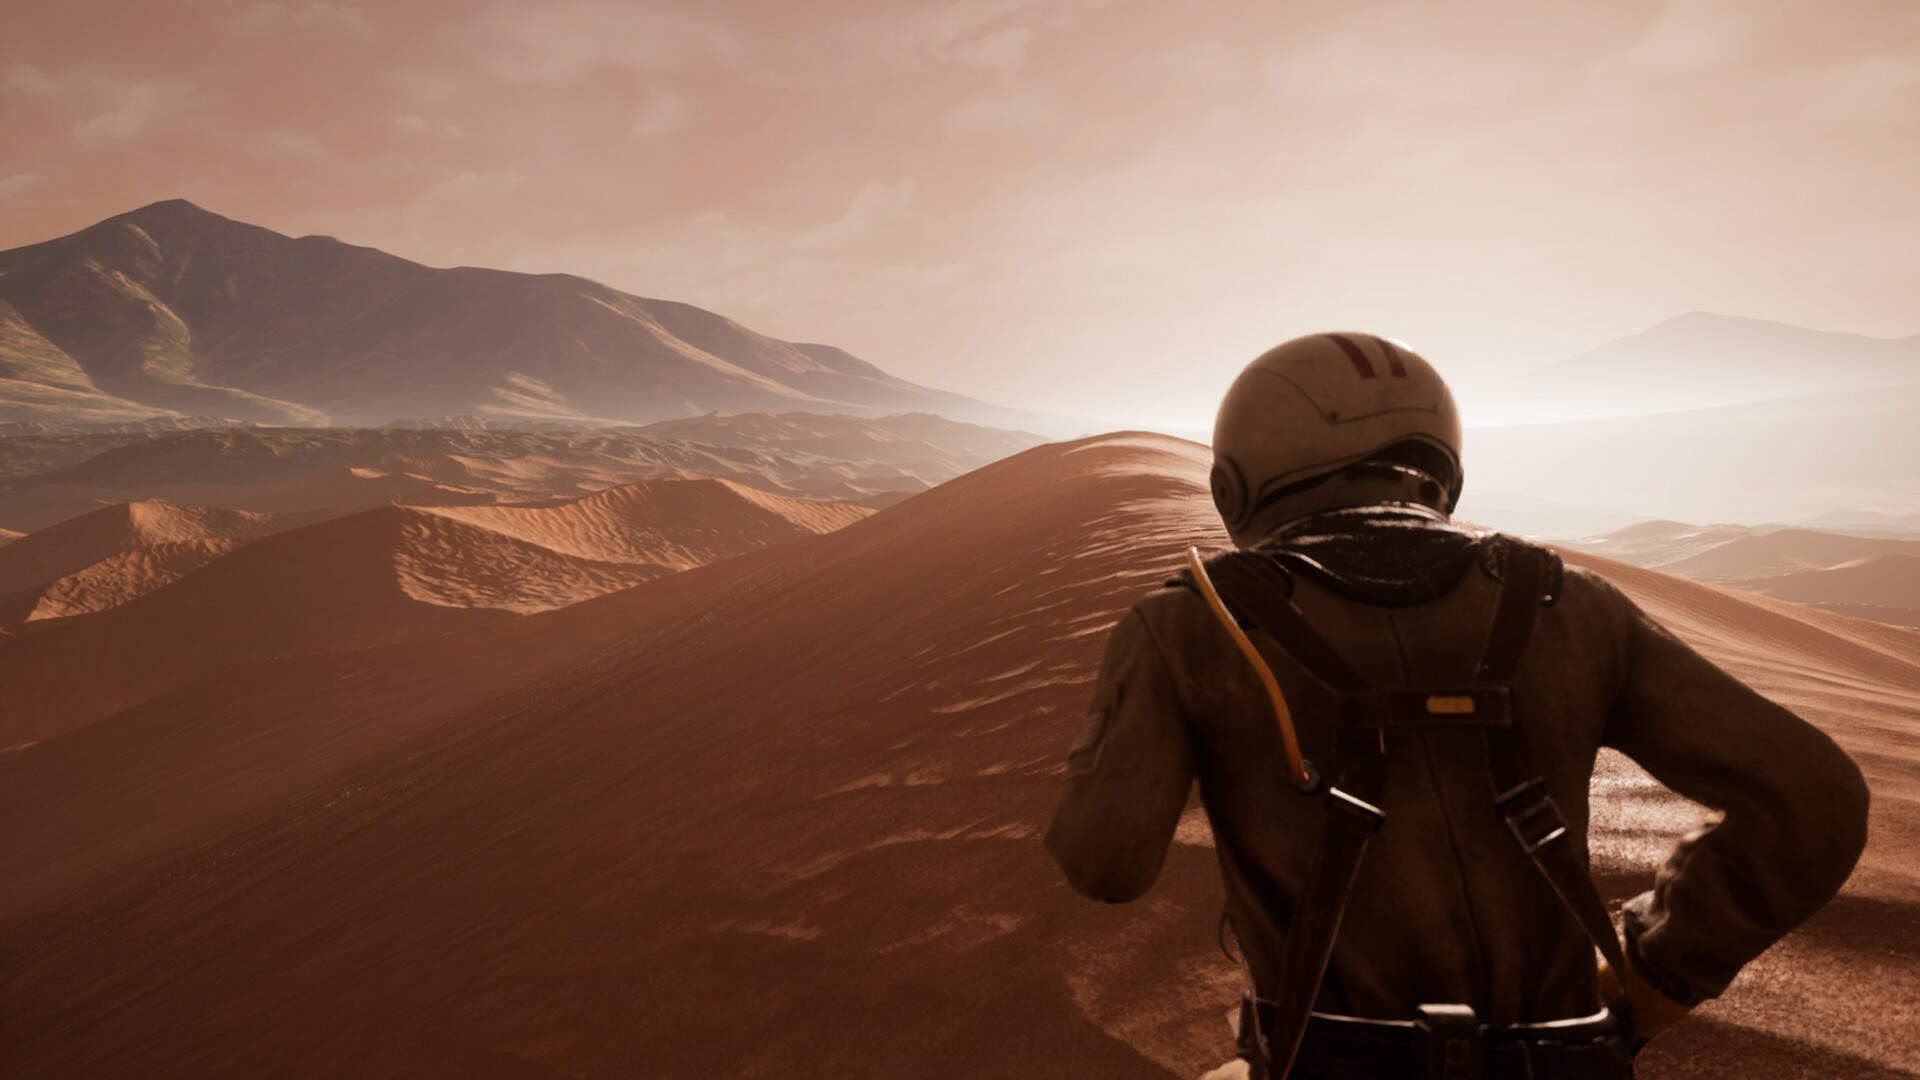 Icarus Is a Free-to-Play Survival Game From DayZ's Creator Coming in 2021